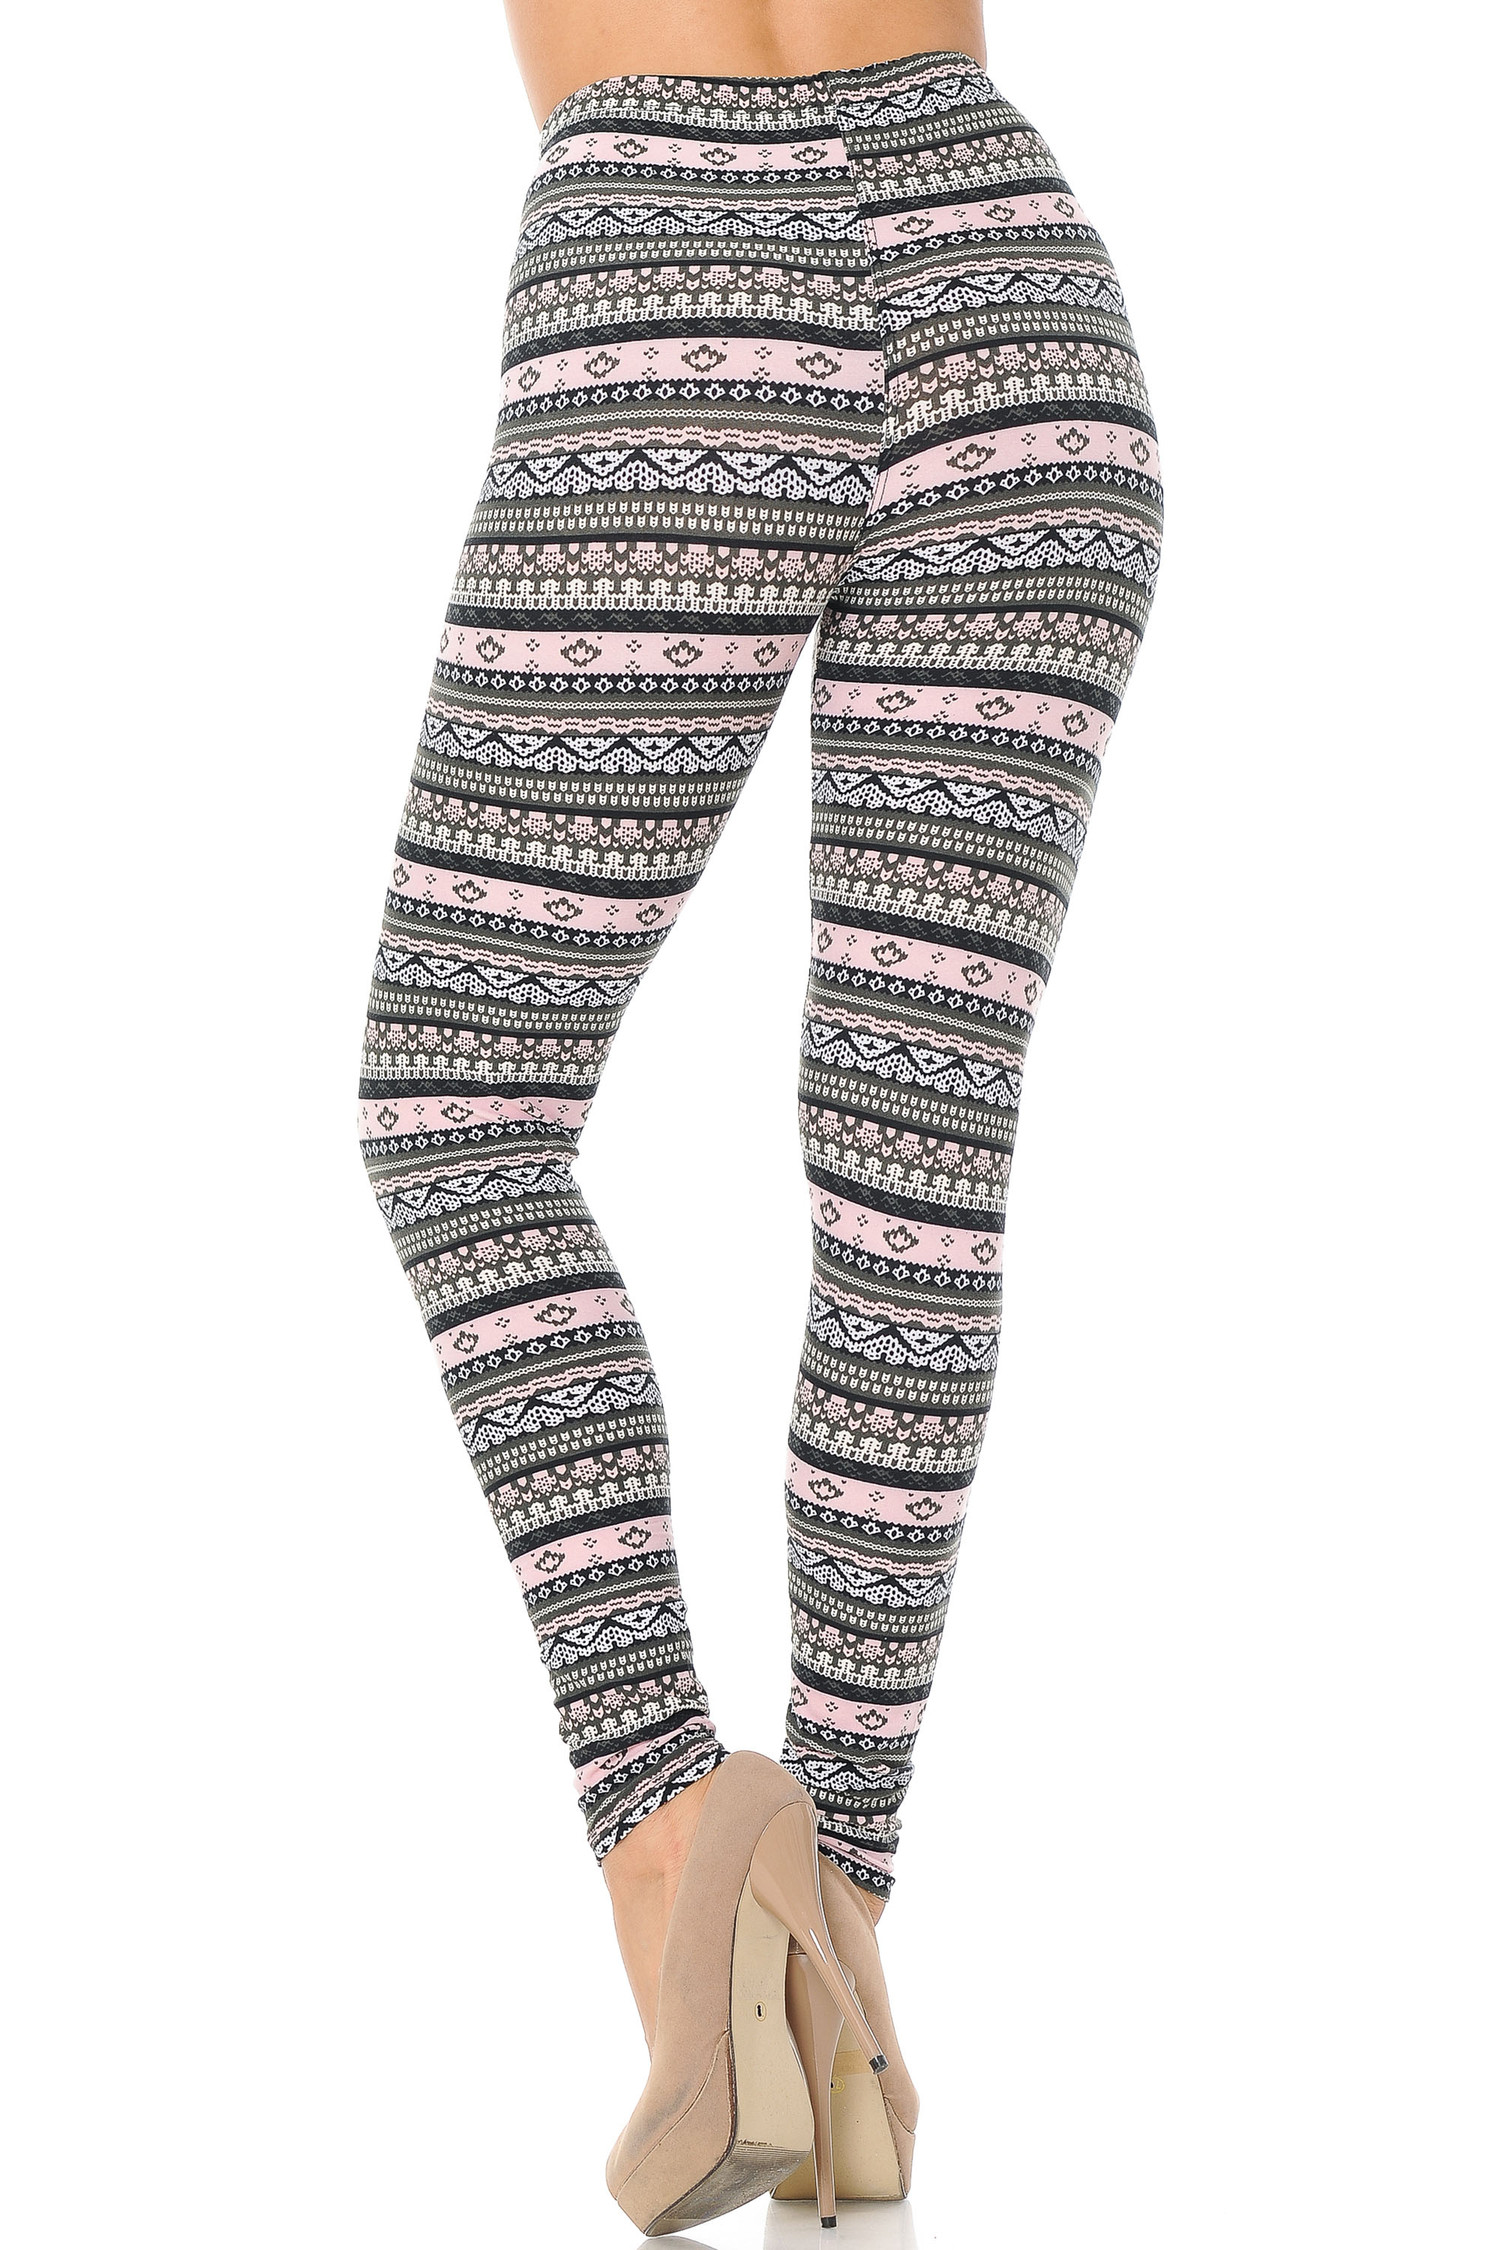 Brushed Dainty Pink Wrap Plus Size Leggings